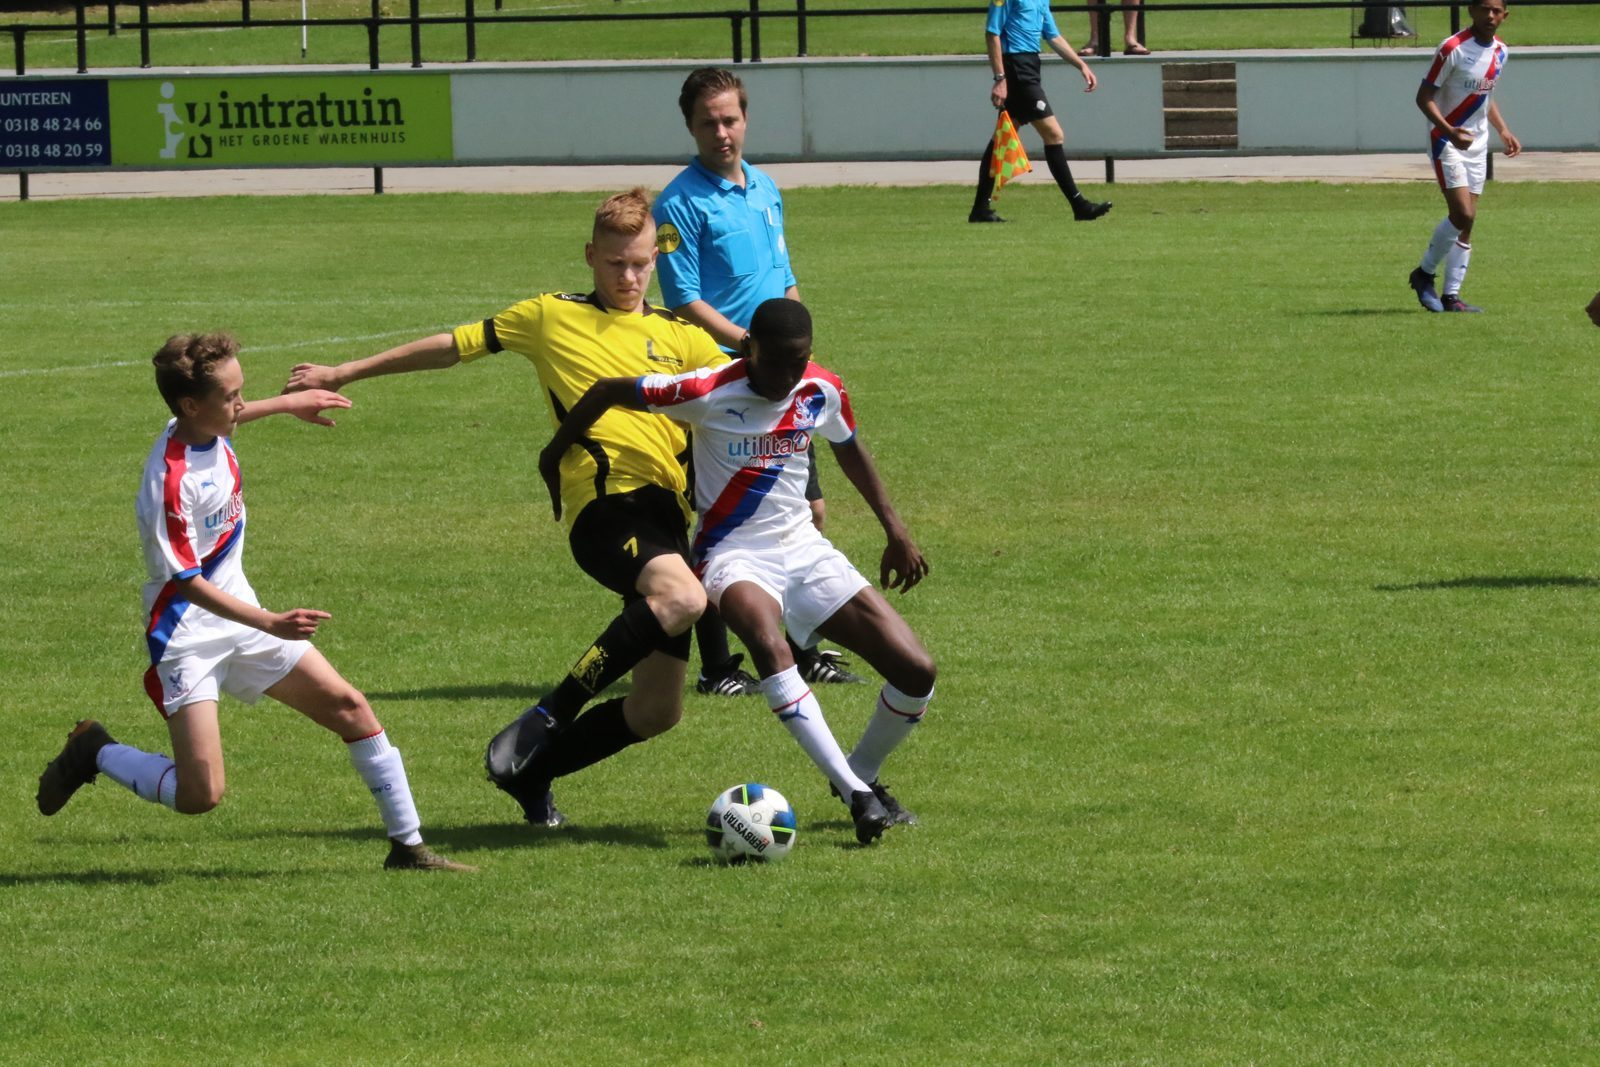 TopParken U14 Soccer Tournament